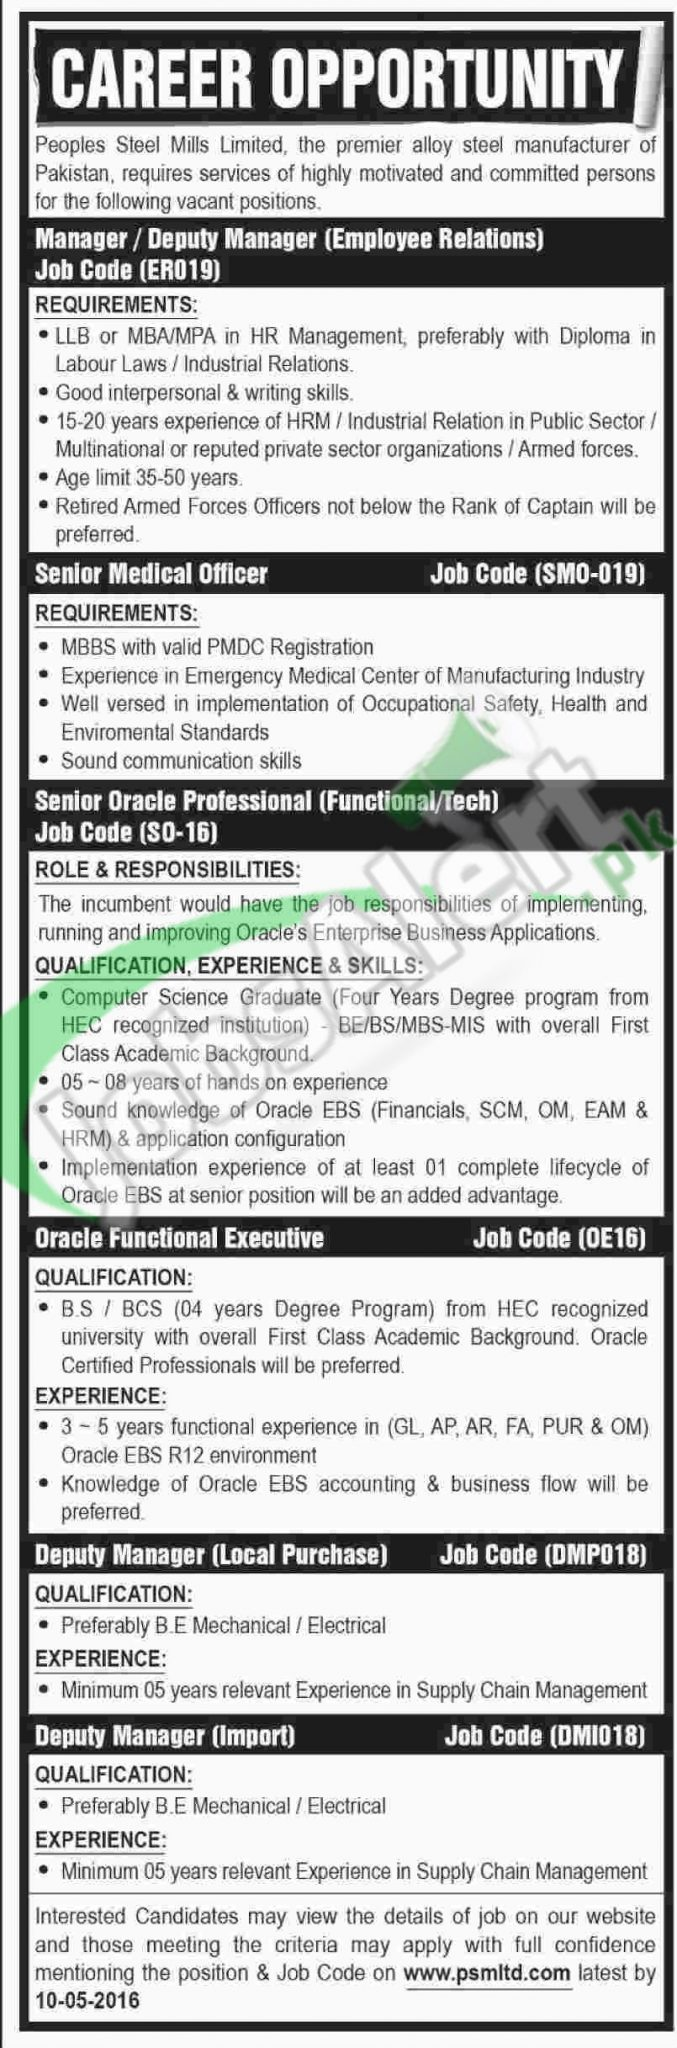 Career Opportunities in Peoples Steel Mills April 2016 For Deputy Managers Latest Add